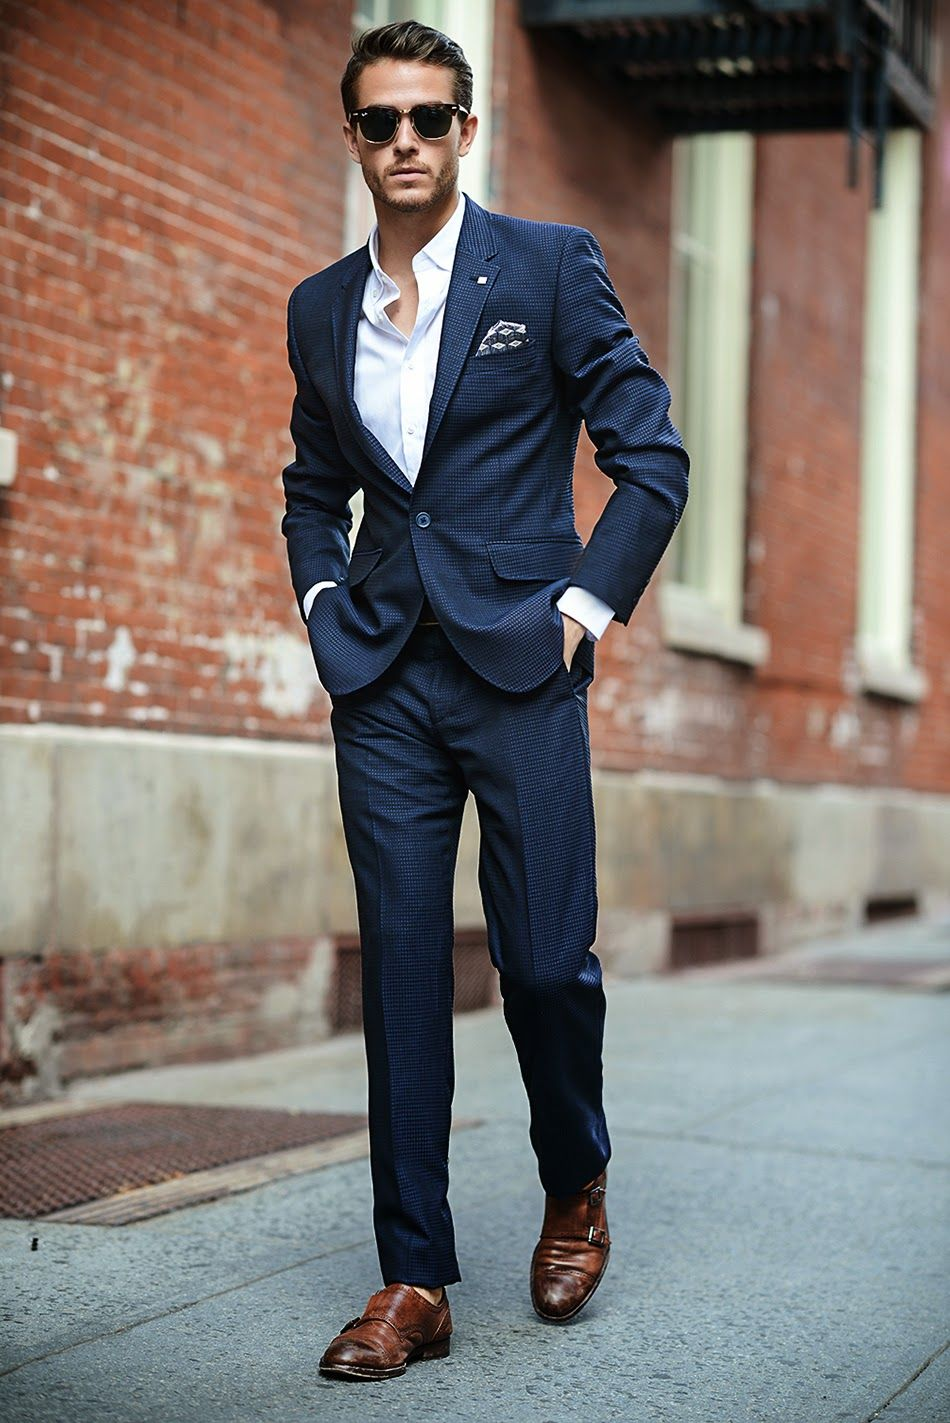 c0afbf5e4 Wearing - Ted Baker suit Is it possible to own too many navy suits? The  answer to that question is NO.